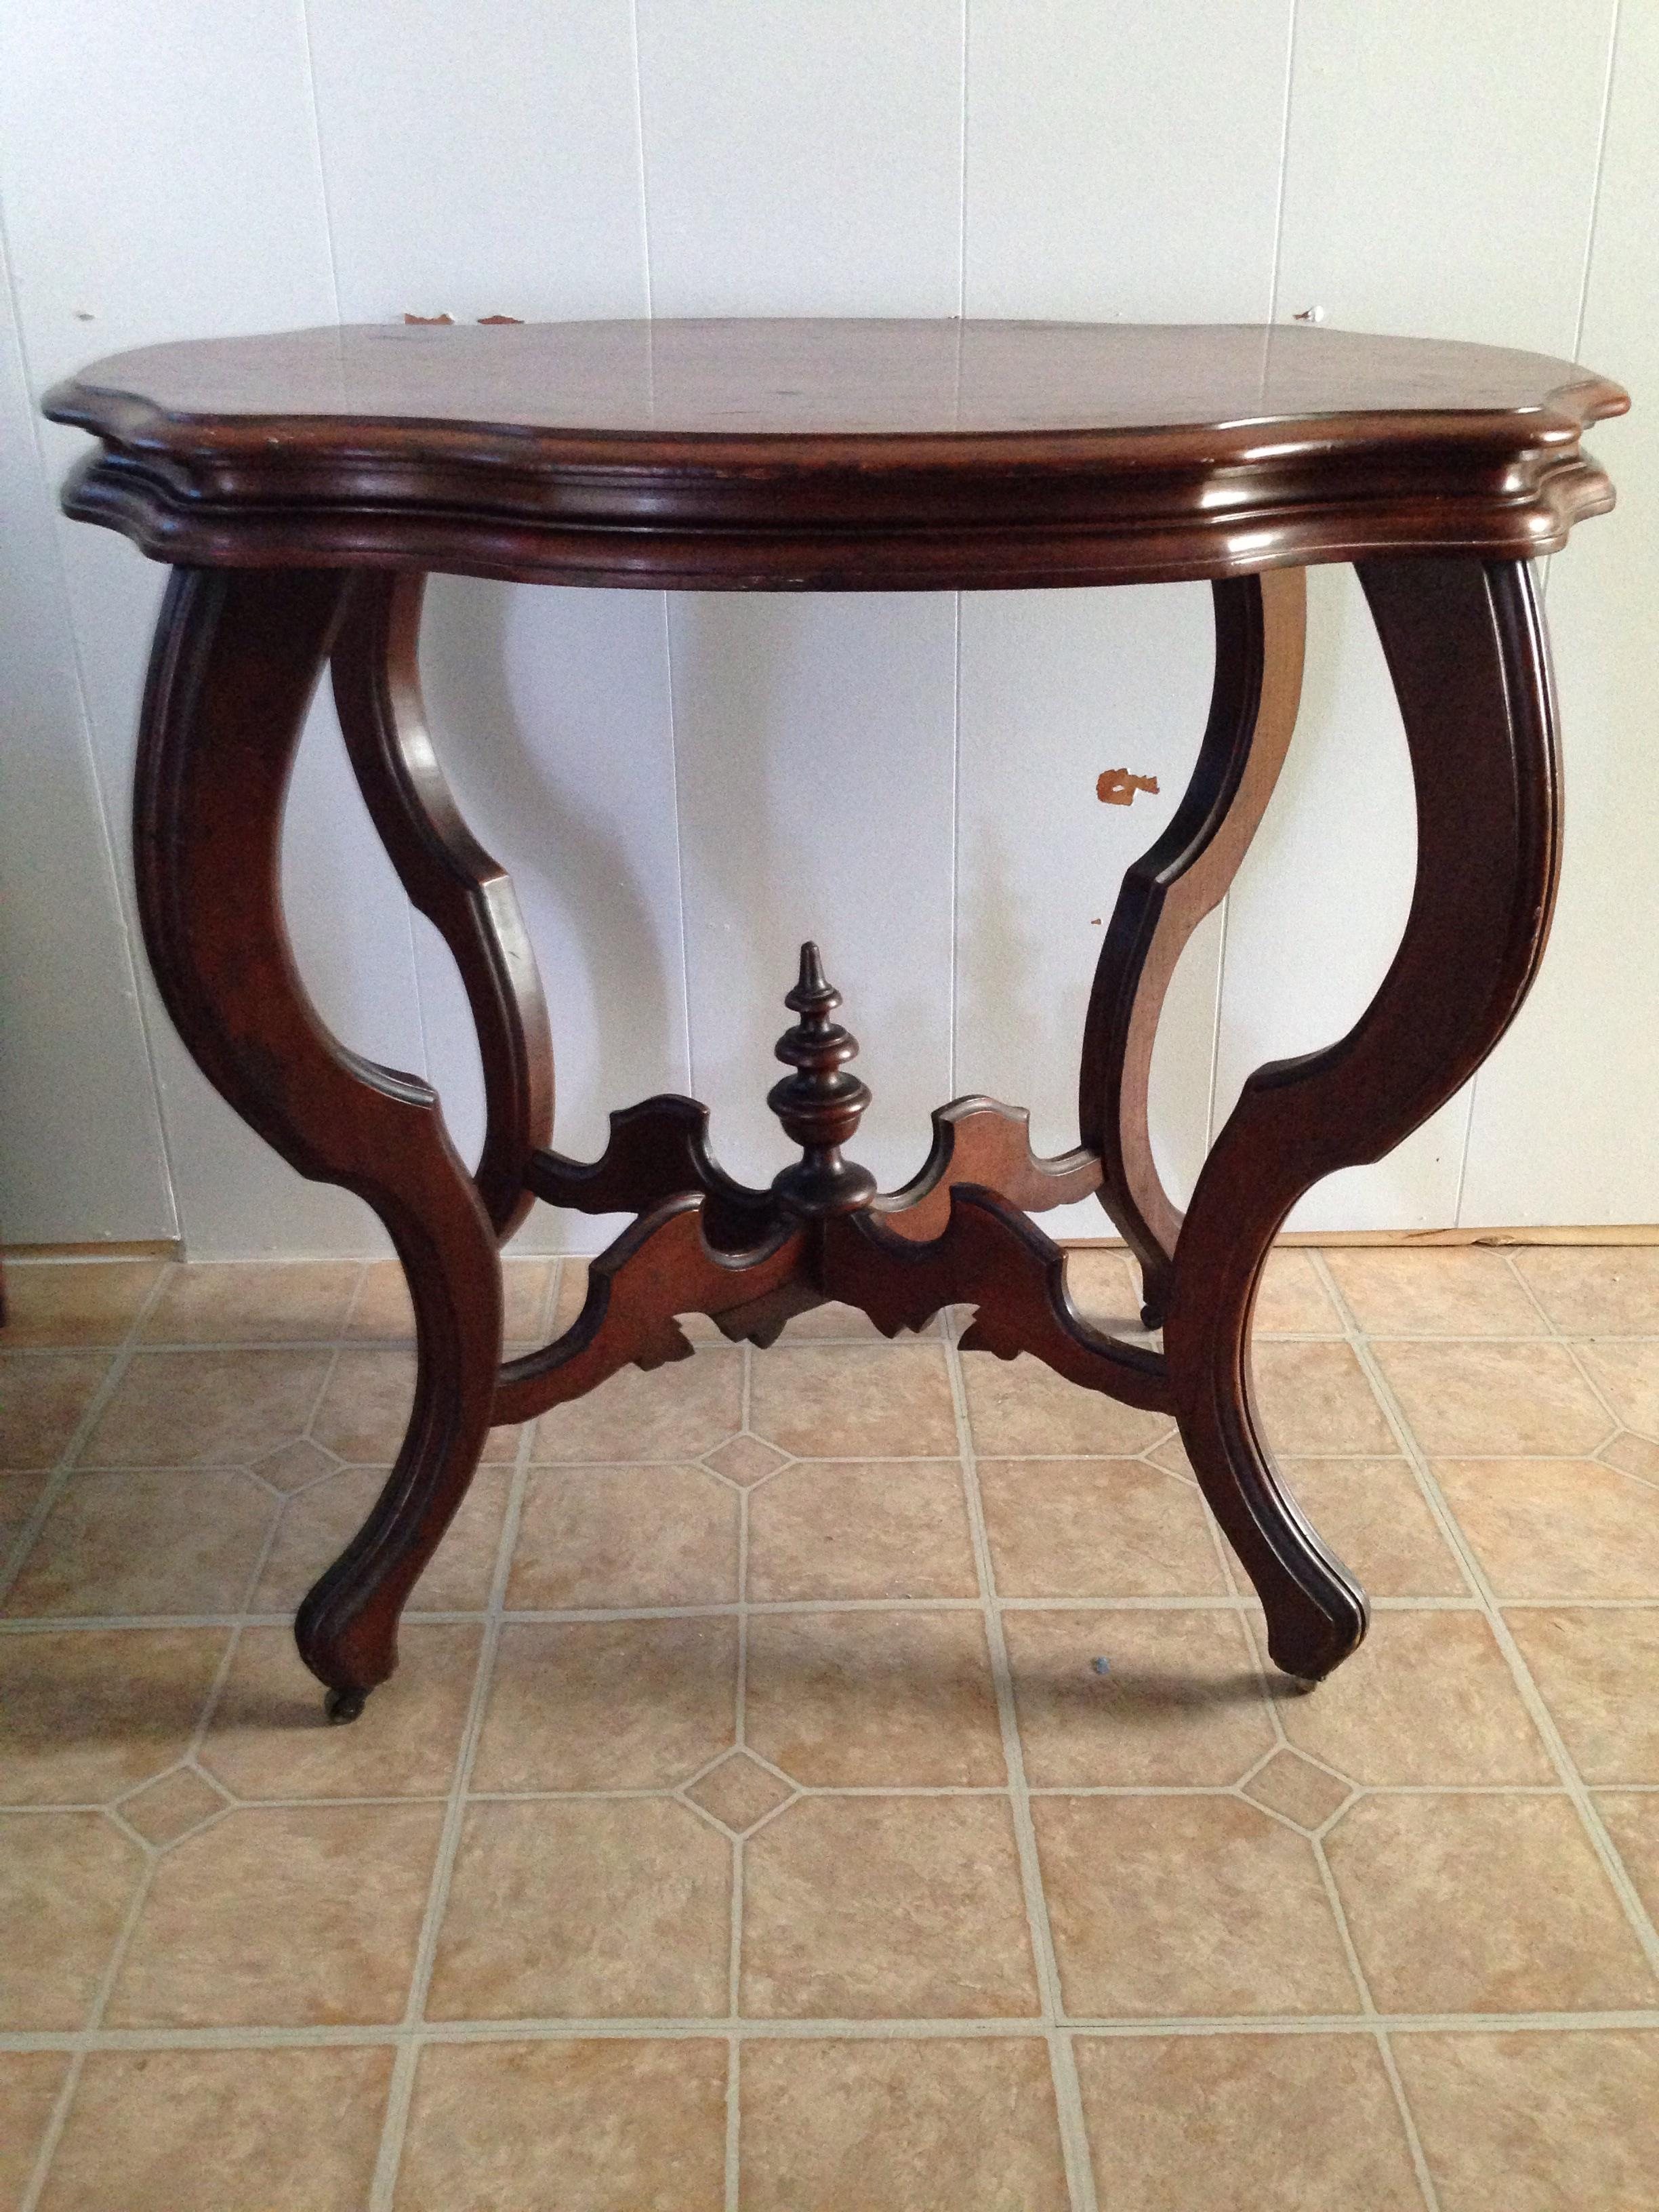 Antique Table With Cabriole Legs (Queen Anne Style)